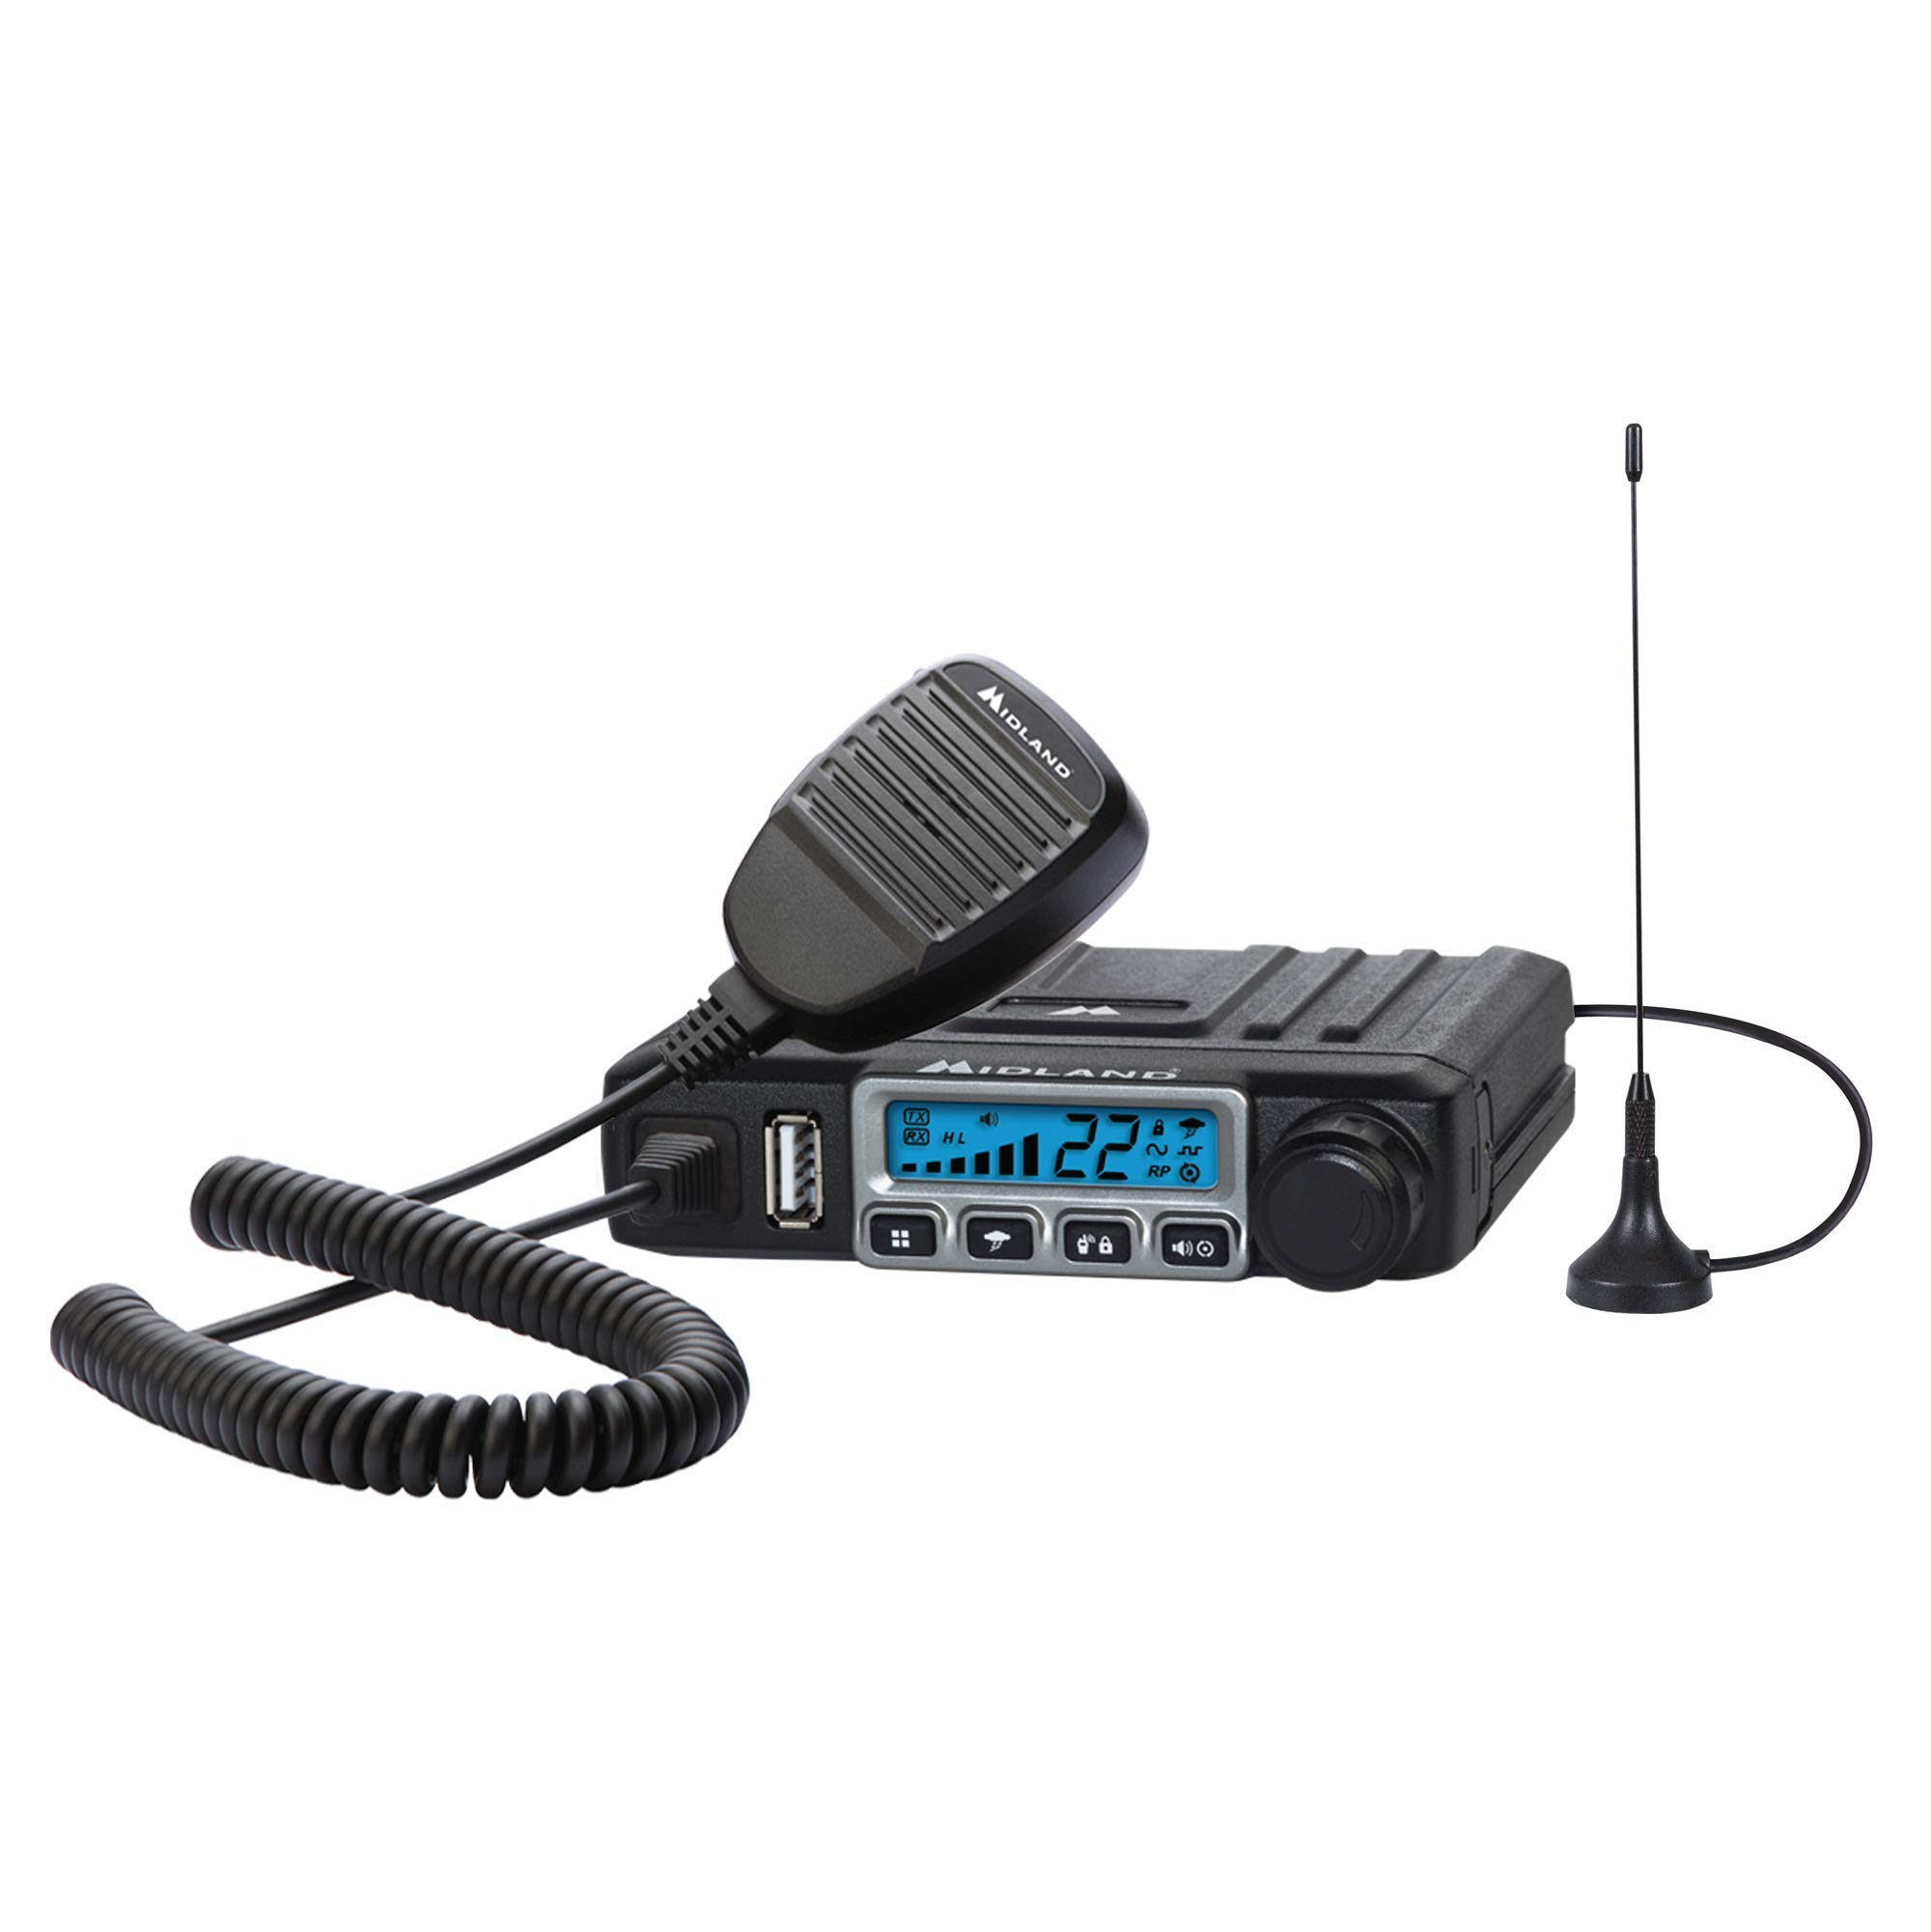 MXT115, 15 Watt GMRS MicroMobile Two-Way Radio - 8 Repeater Channels, 142 Privacy Codes, NOAA Weather Scan + Alert & External Magnetic Mount Antenna (Single Pack) (Black) by Midland